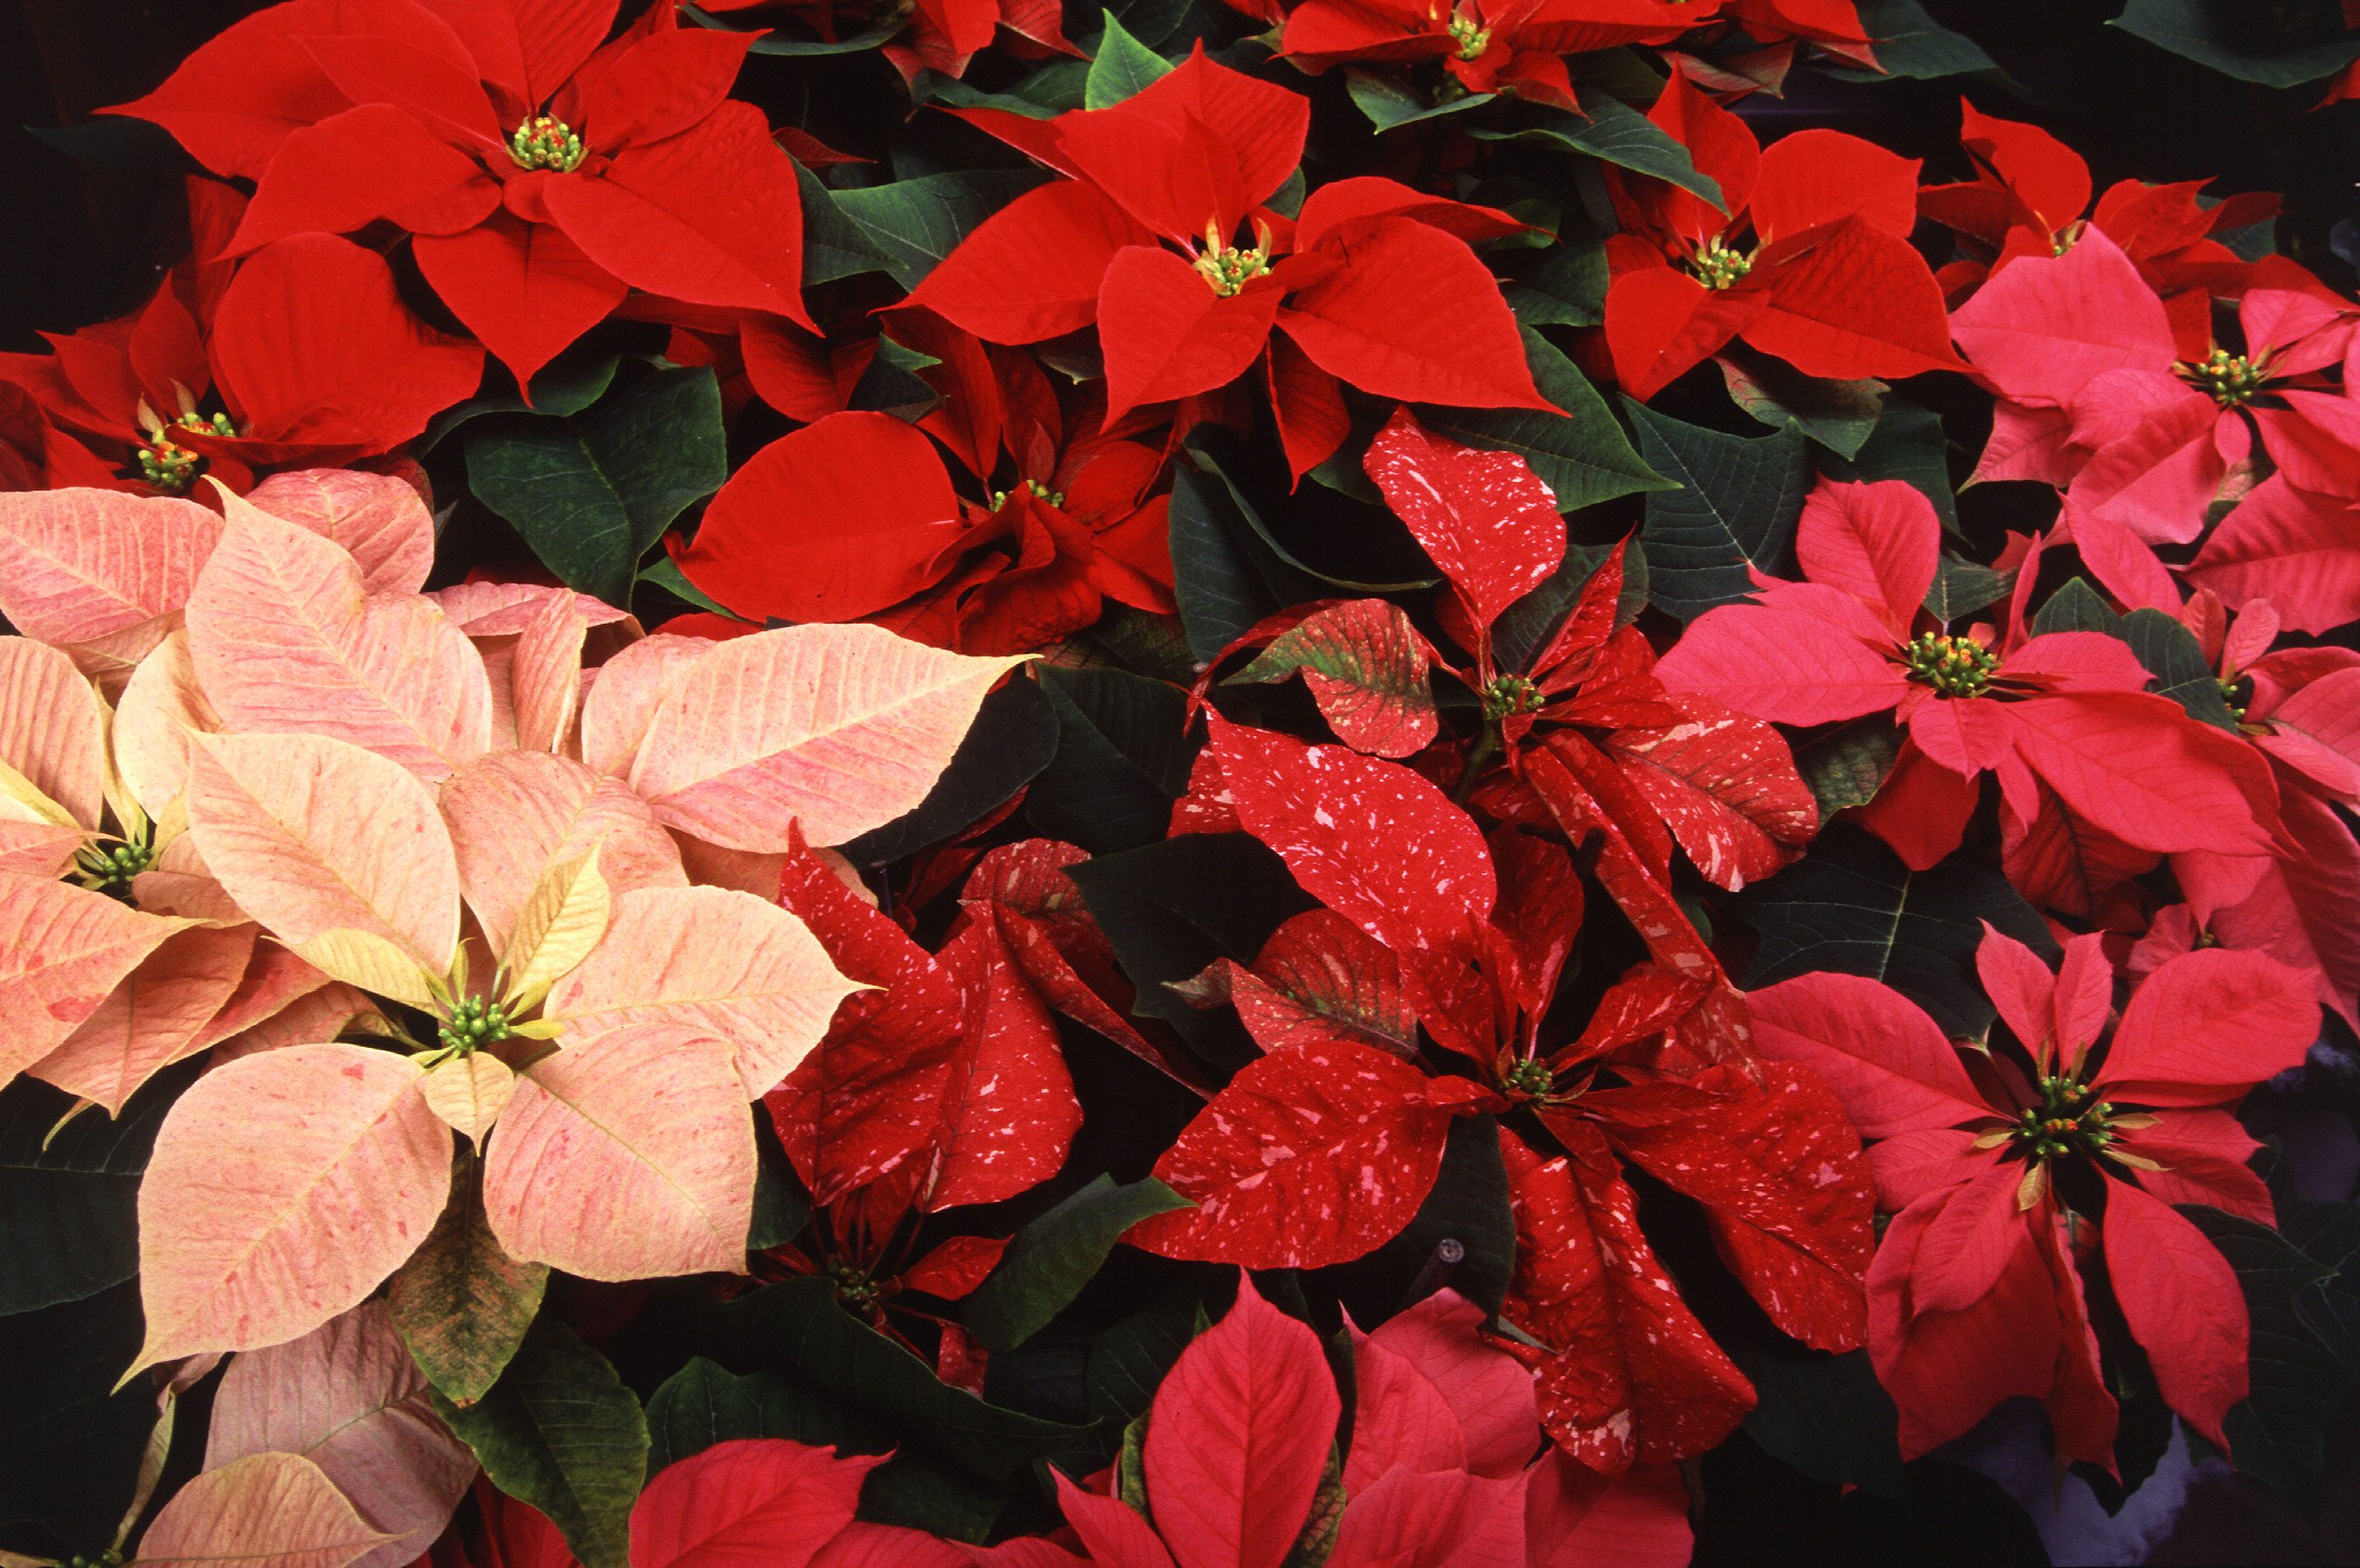 http://upload.wikimedia.org/wikipedia/commons/7/7d/Poinsettia_thumbnail.jpg